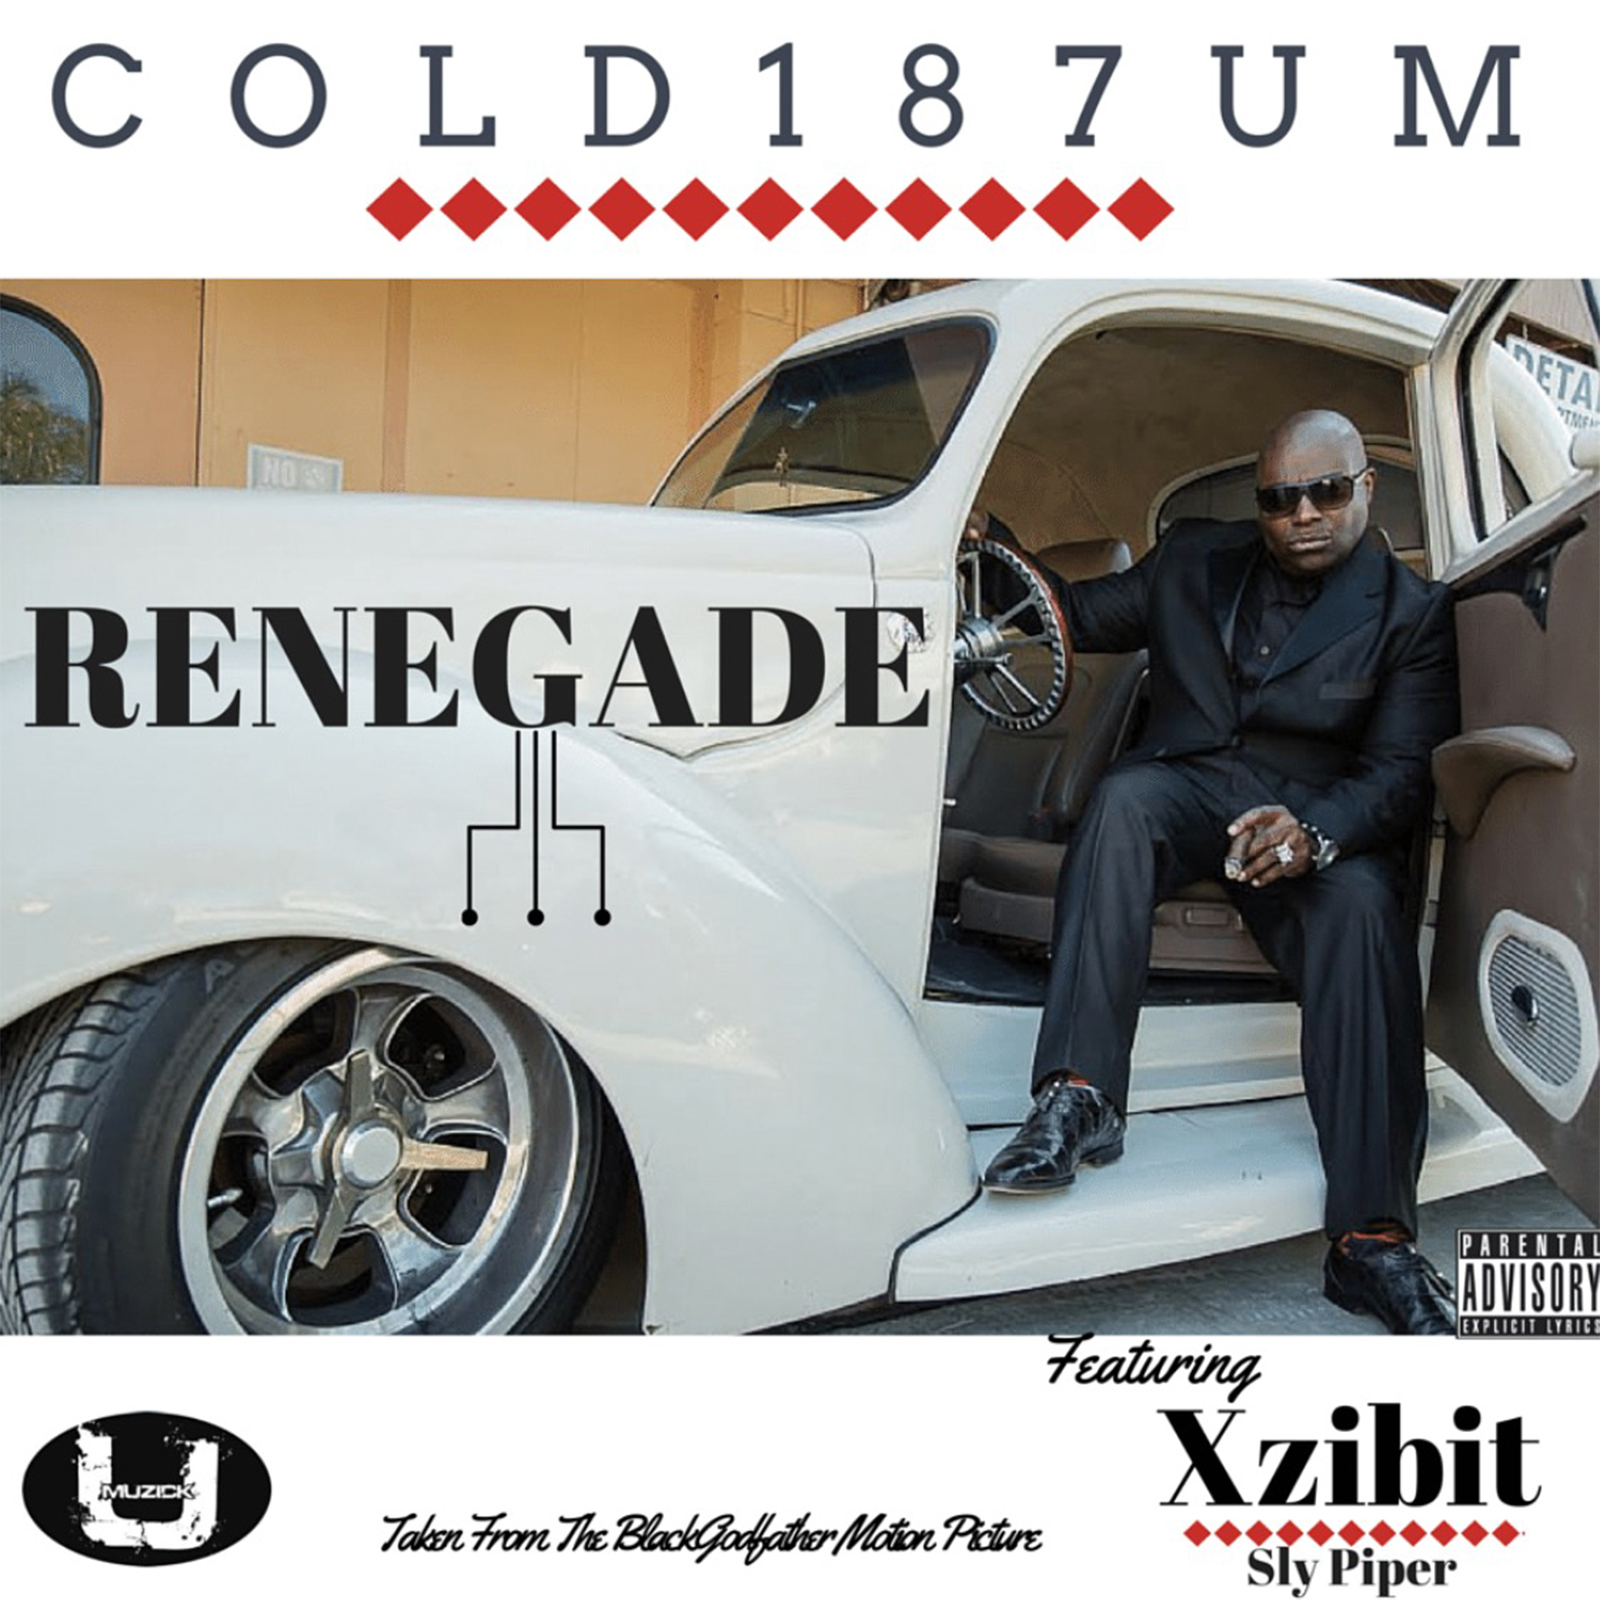 Renegade - Cold 187um Feat. Xzibit & Sly Piper_Cover